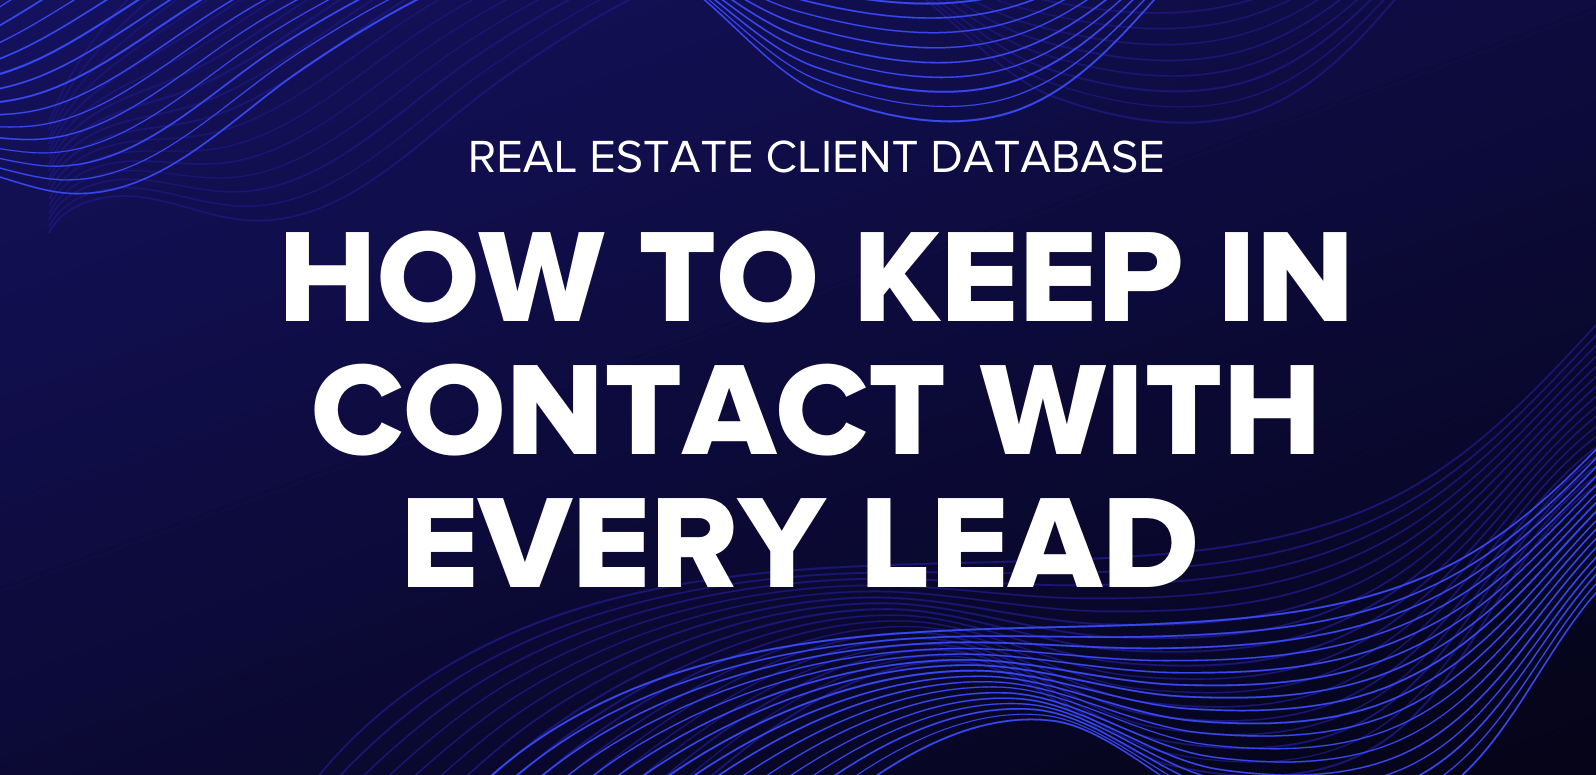 Real Estate Client Database: How to Keep in Contact With Every Last Lead on Your List